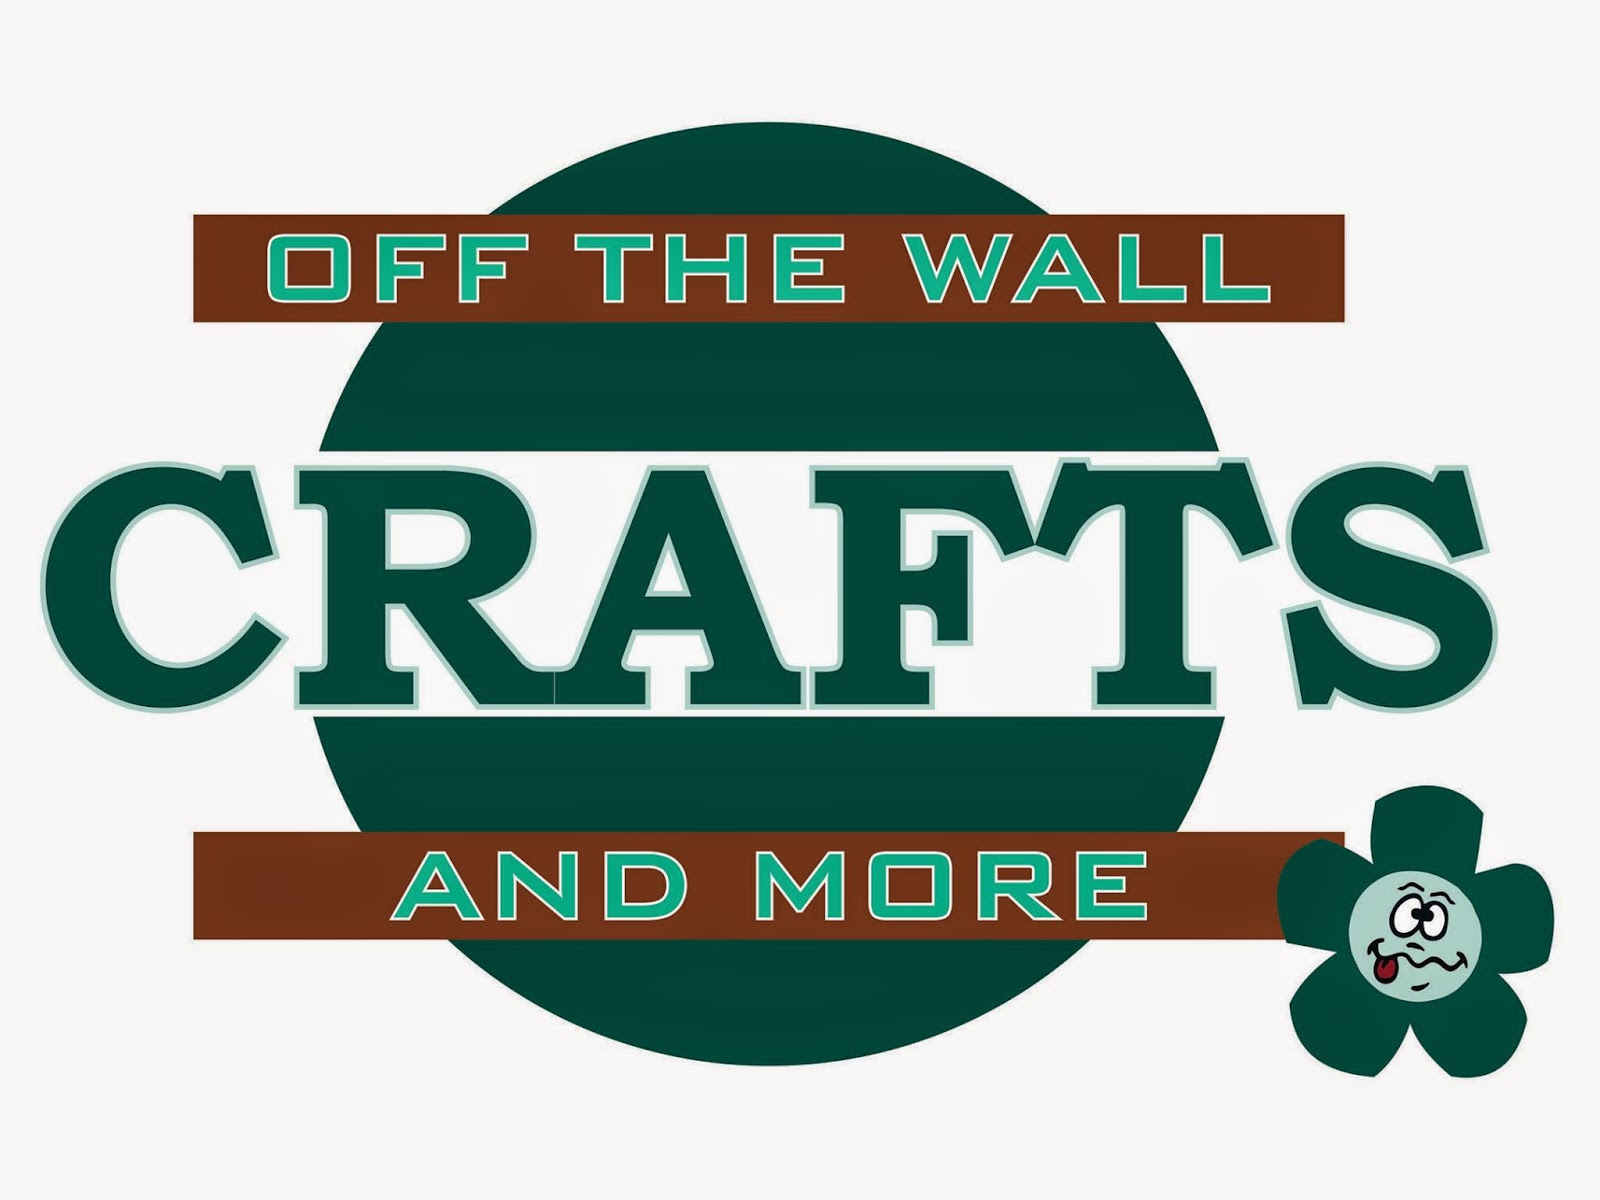 Kirkfield Kawartha Lakes Store Off the Wall Crafts and More Logo in green and brown with crazy daisy